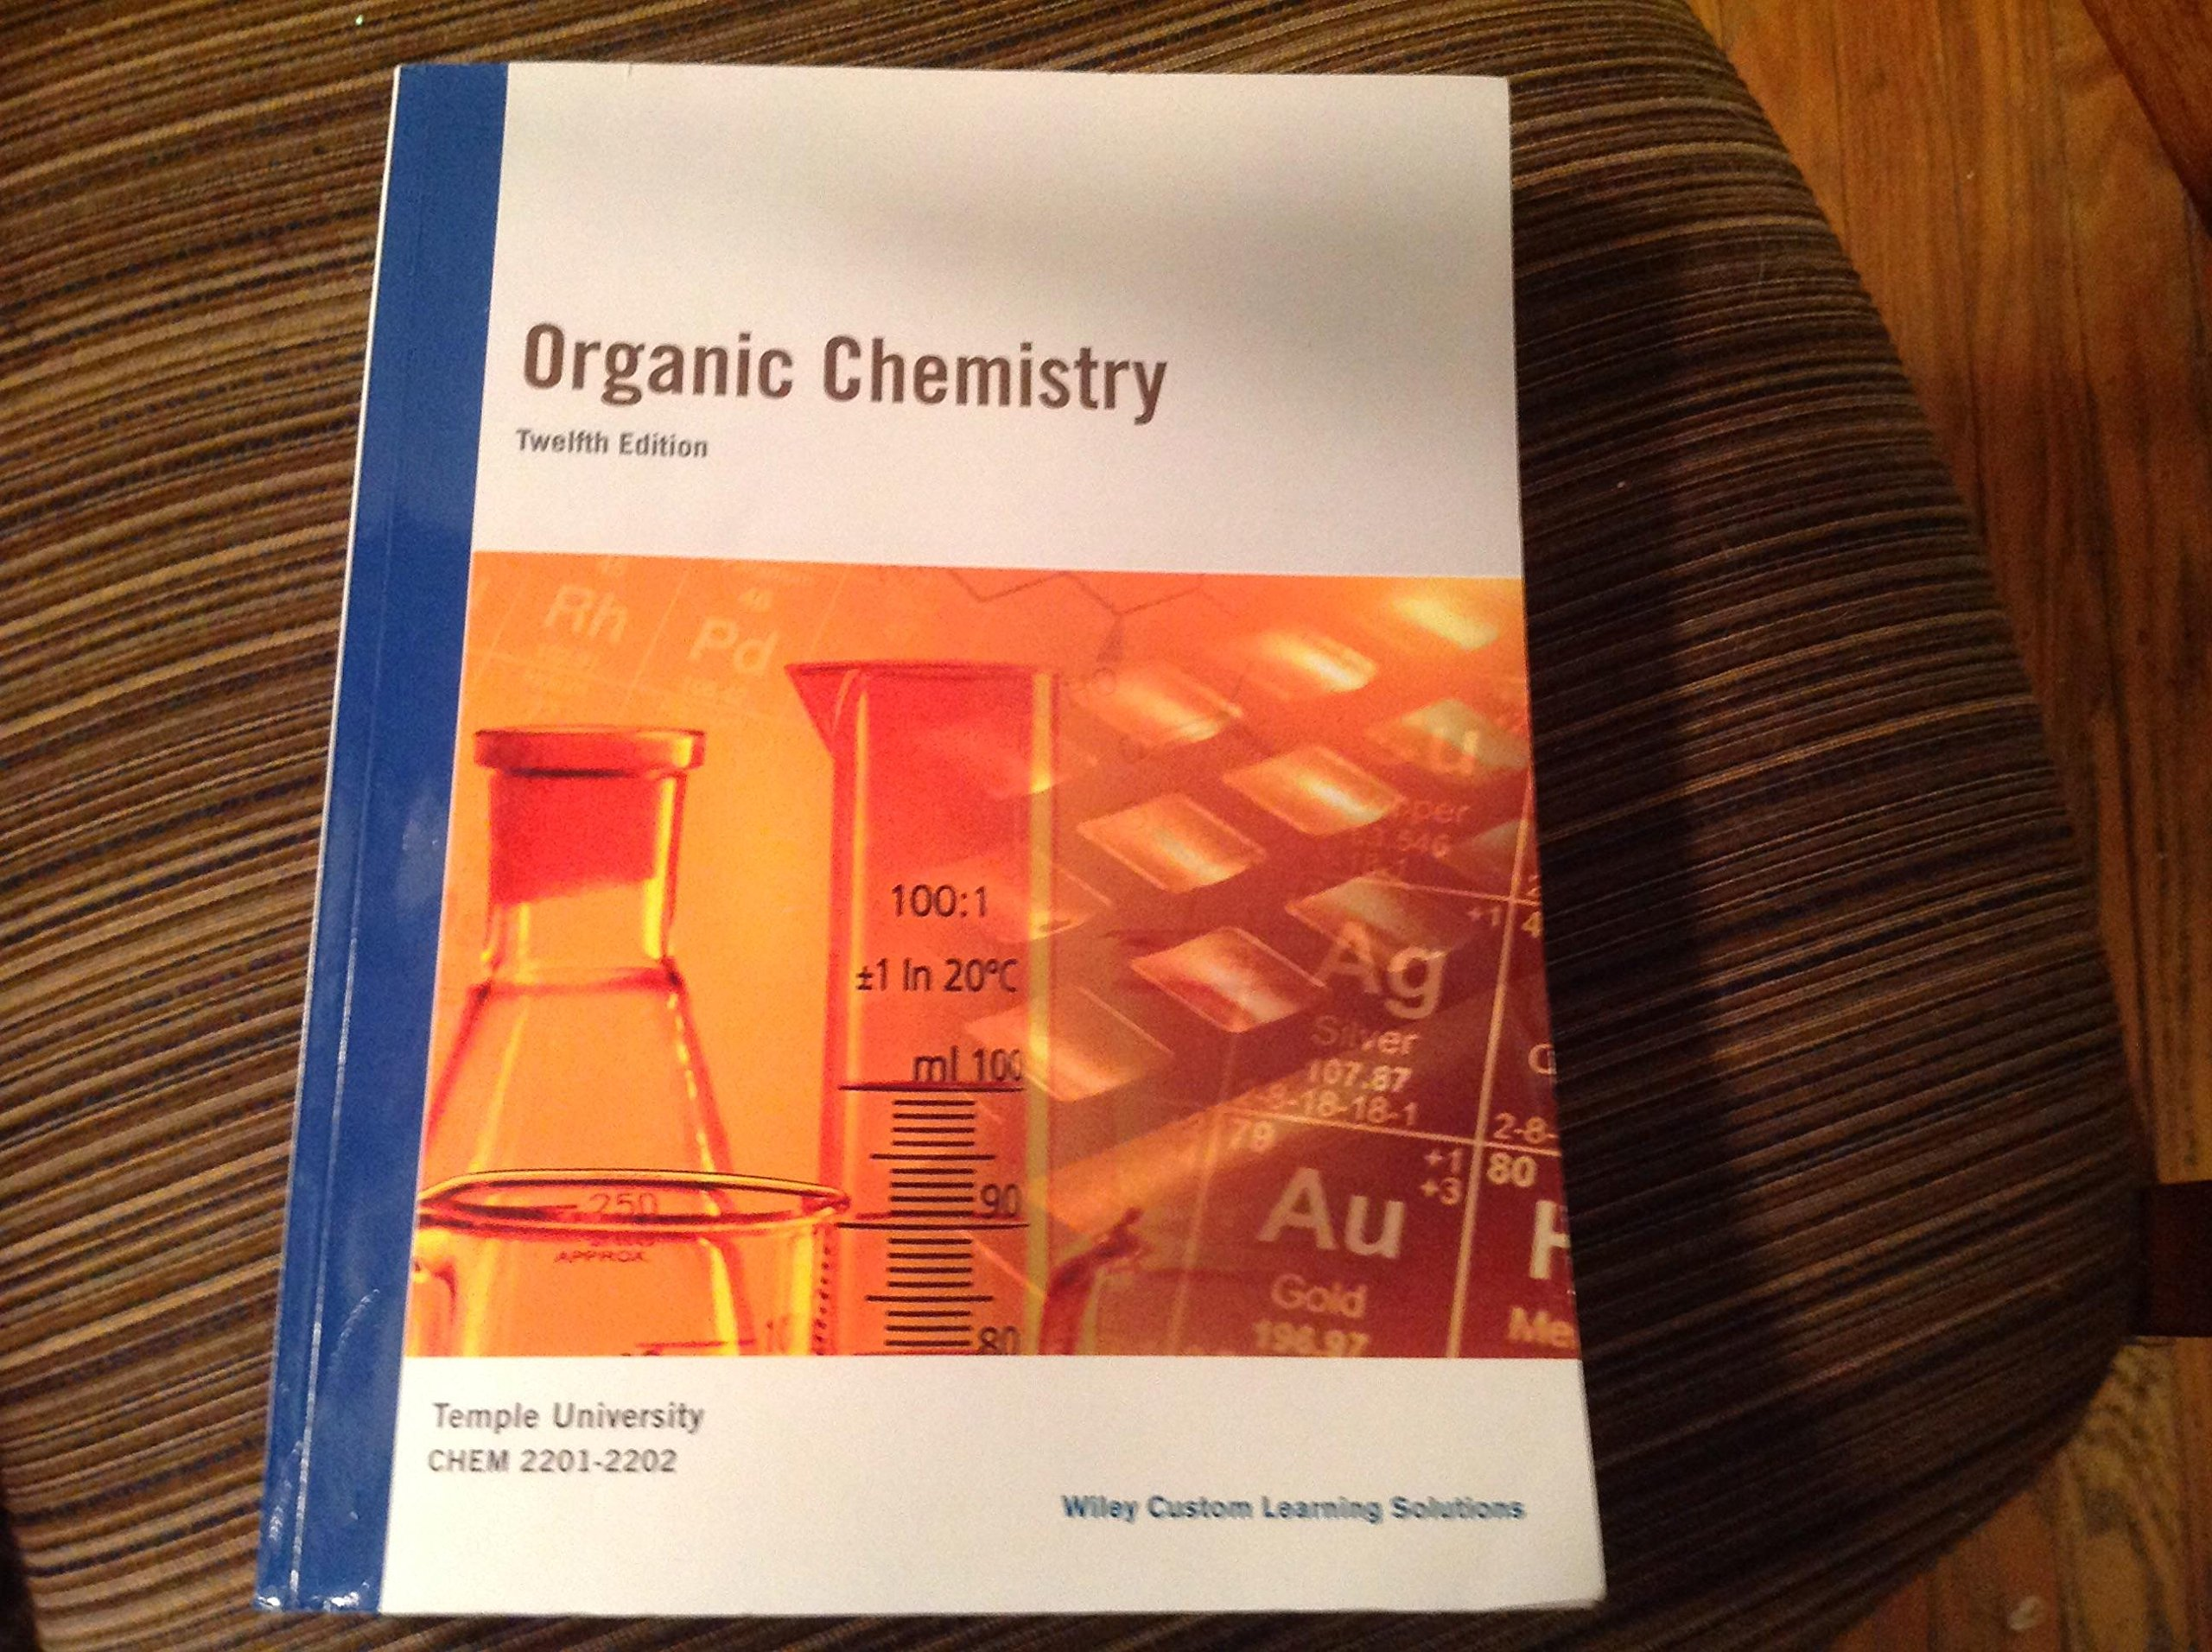 Organic Chemistry Twelfth Edition for Temple University CHEM 2201-2202  Wiley Custom Learning Solutions: Craig B Fryhle, Scott Snyder T.W. Graham  Solomons: ...